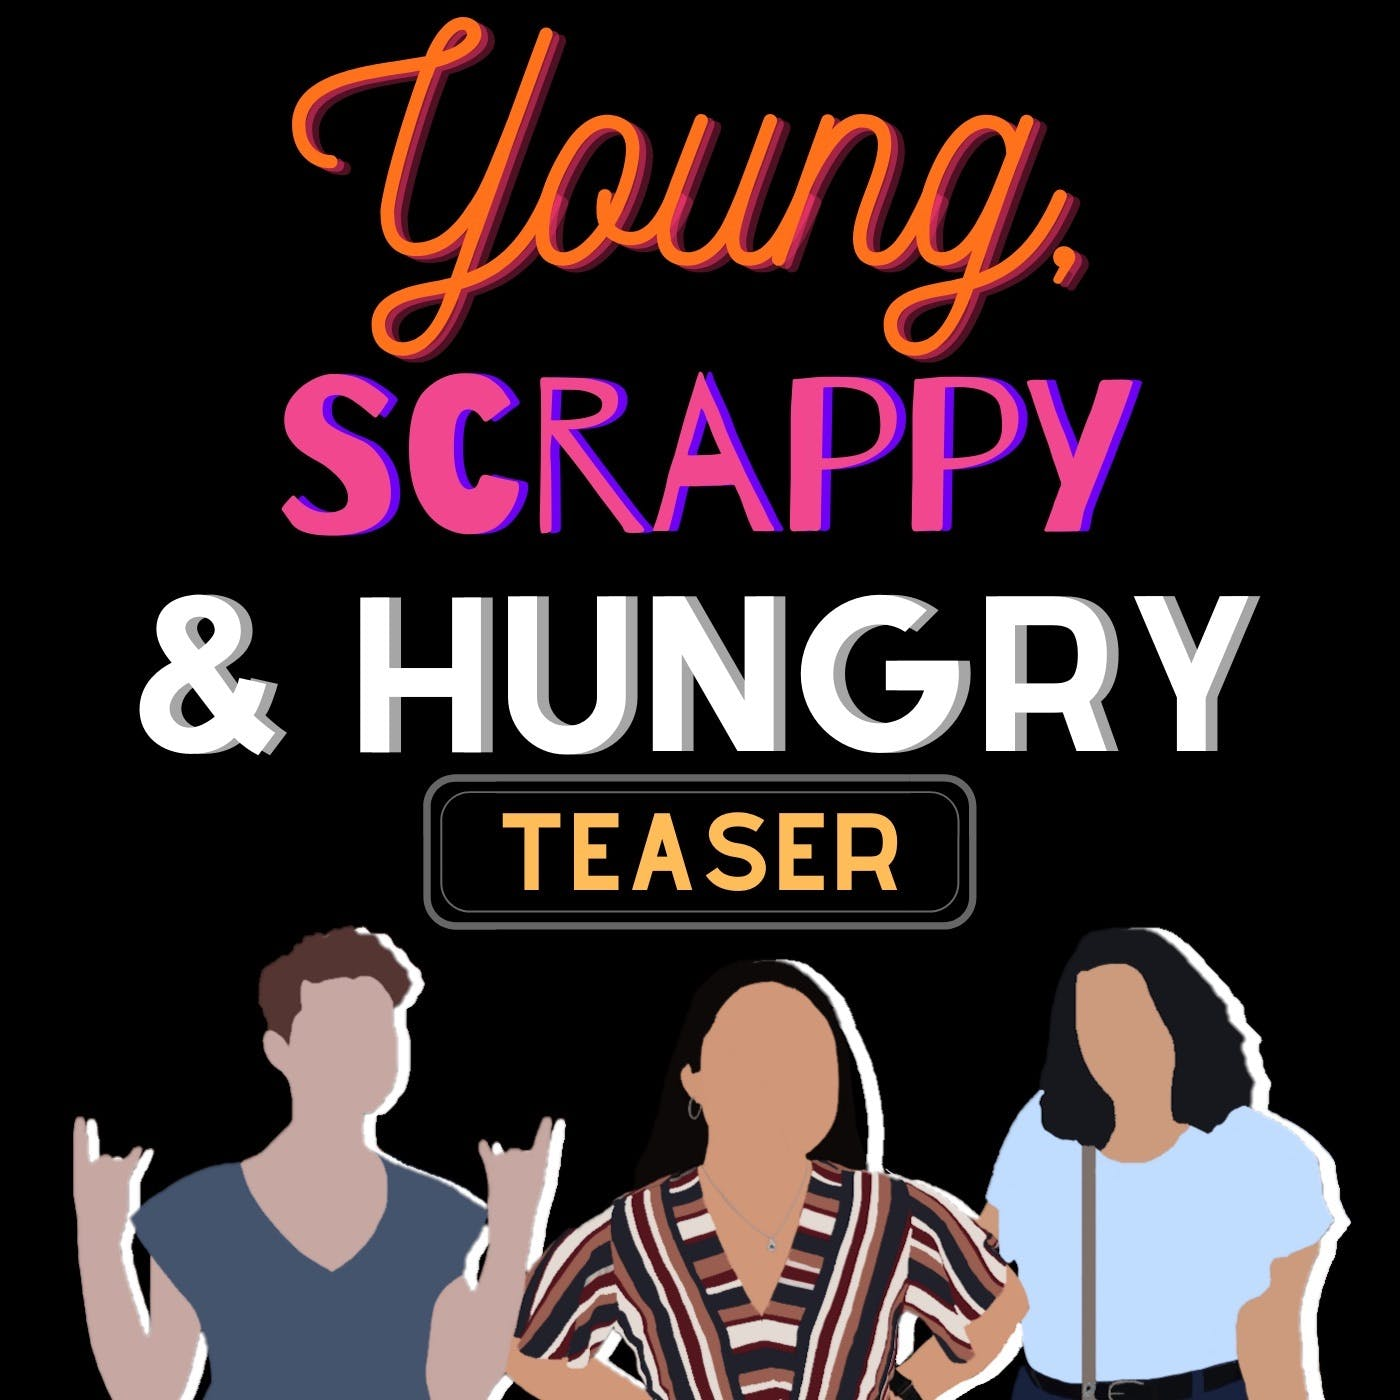 Welcome to Young, Scrappy & Hungry